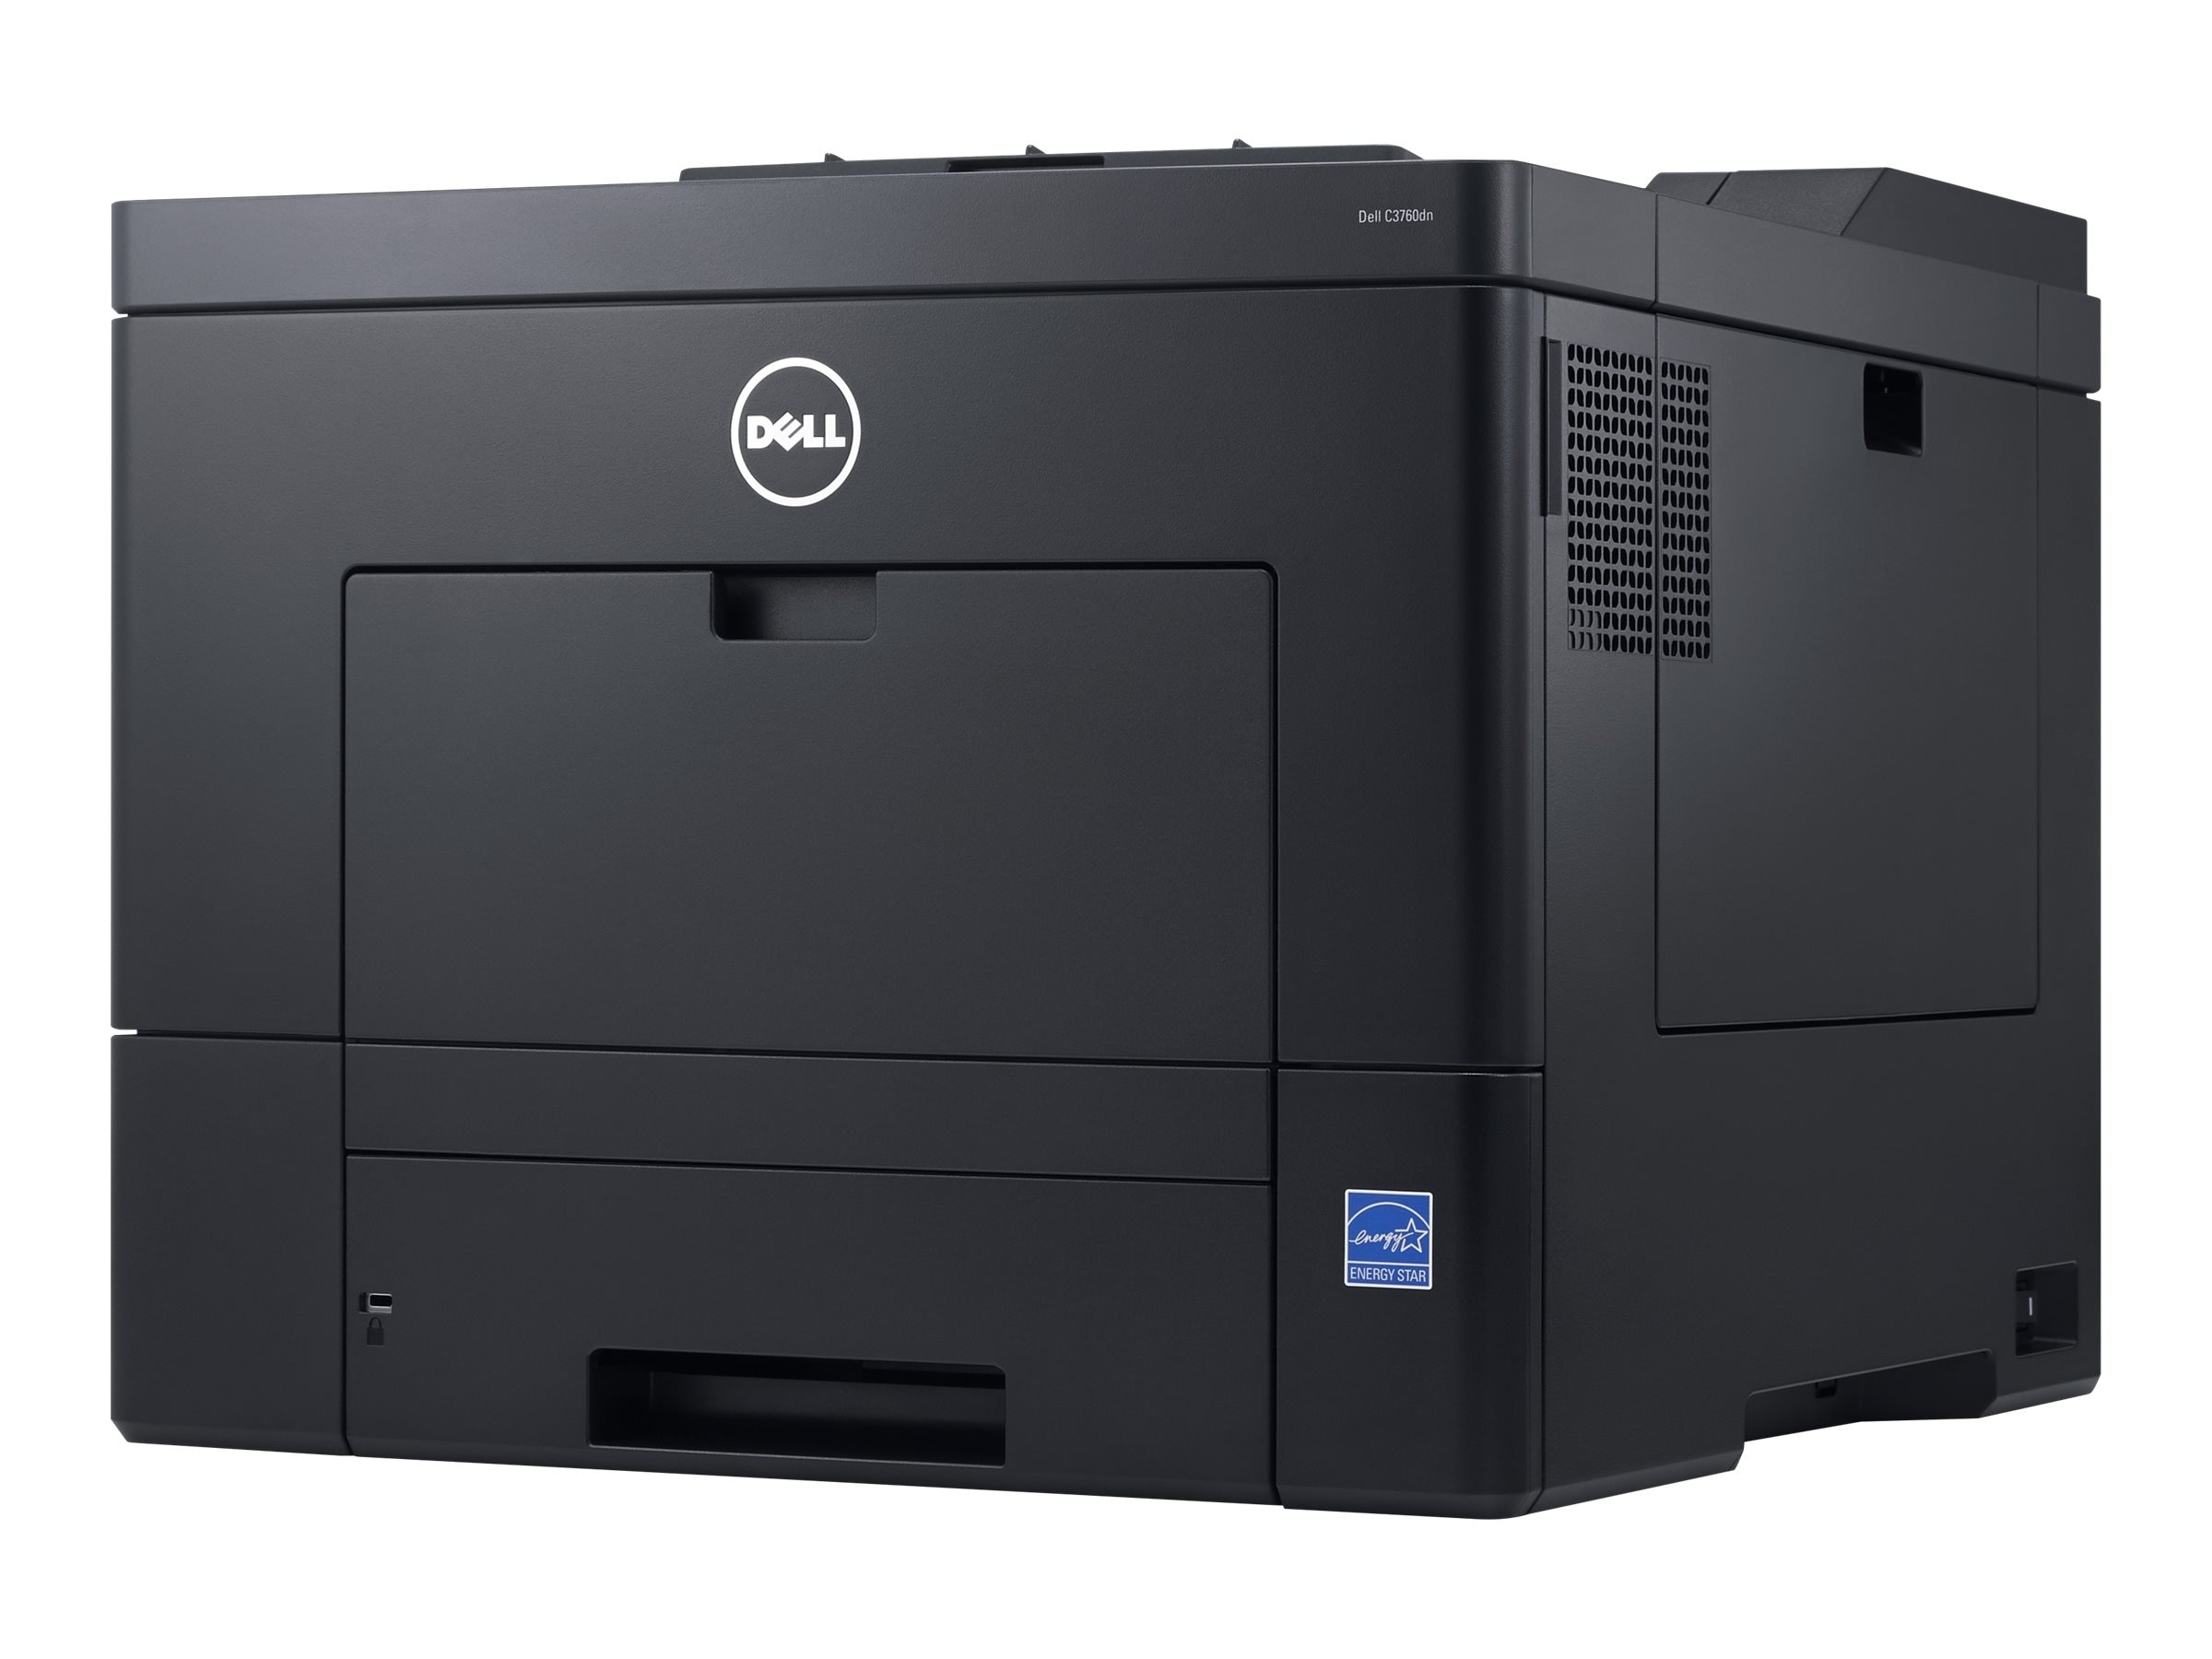 Dell C2660dn Color Laser Printer, NDWPJ, 16376416, Printers - Laser & LED (color)